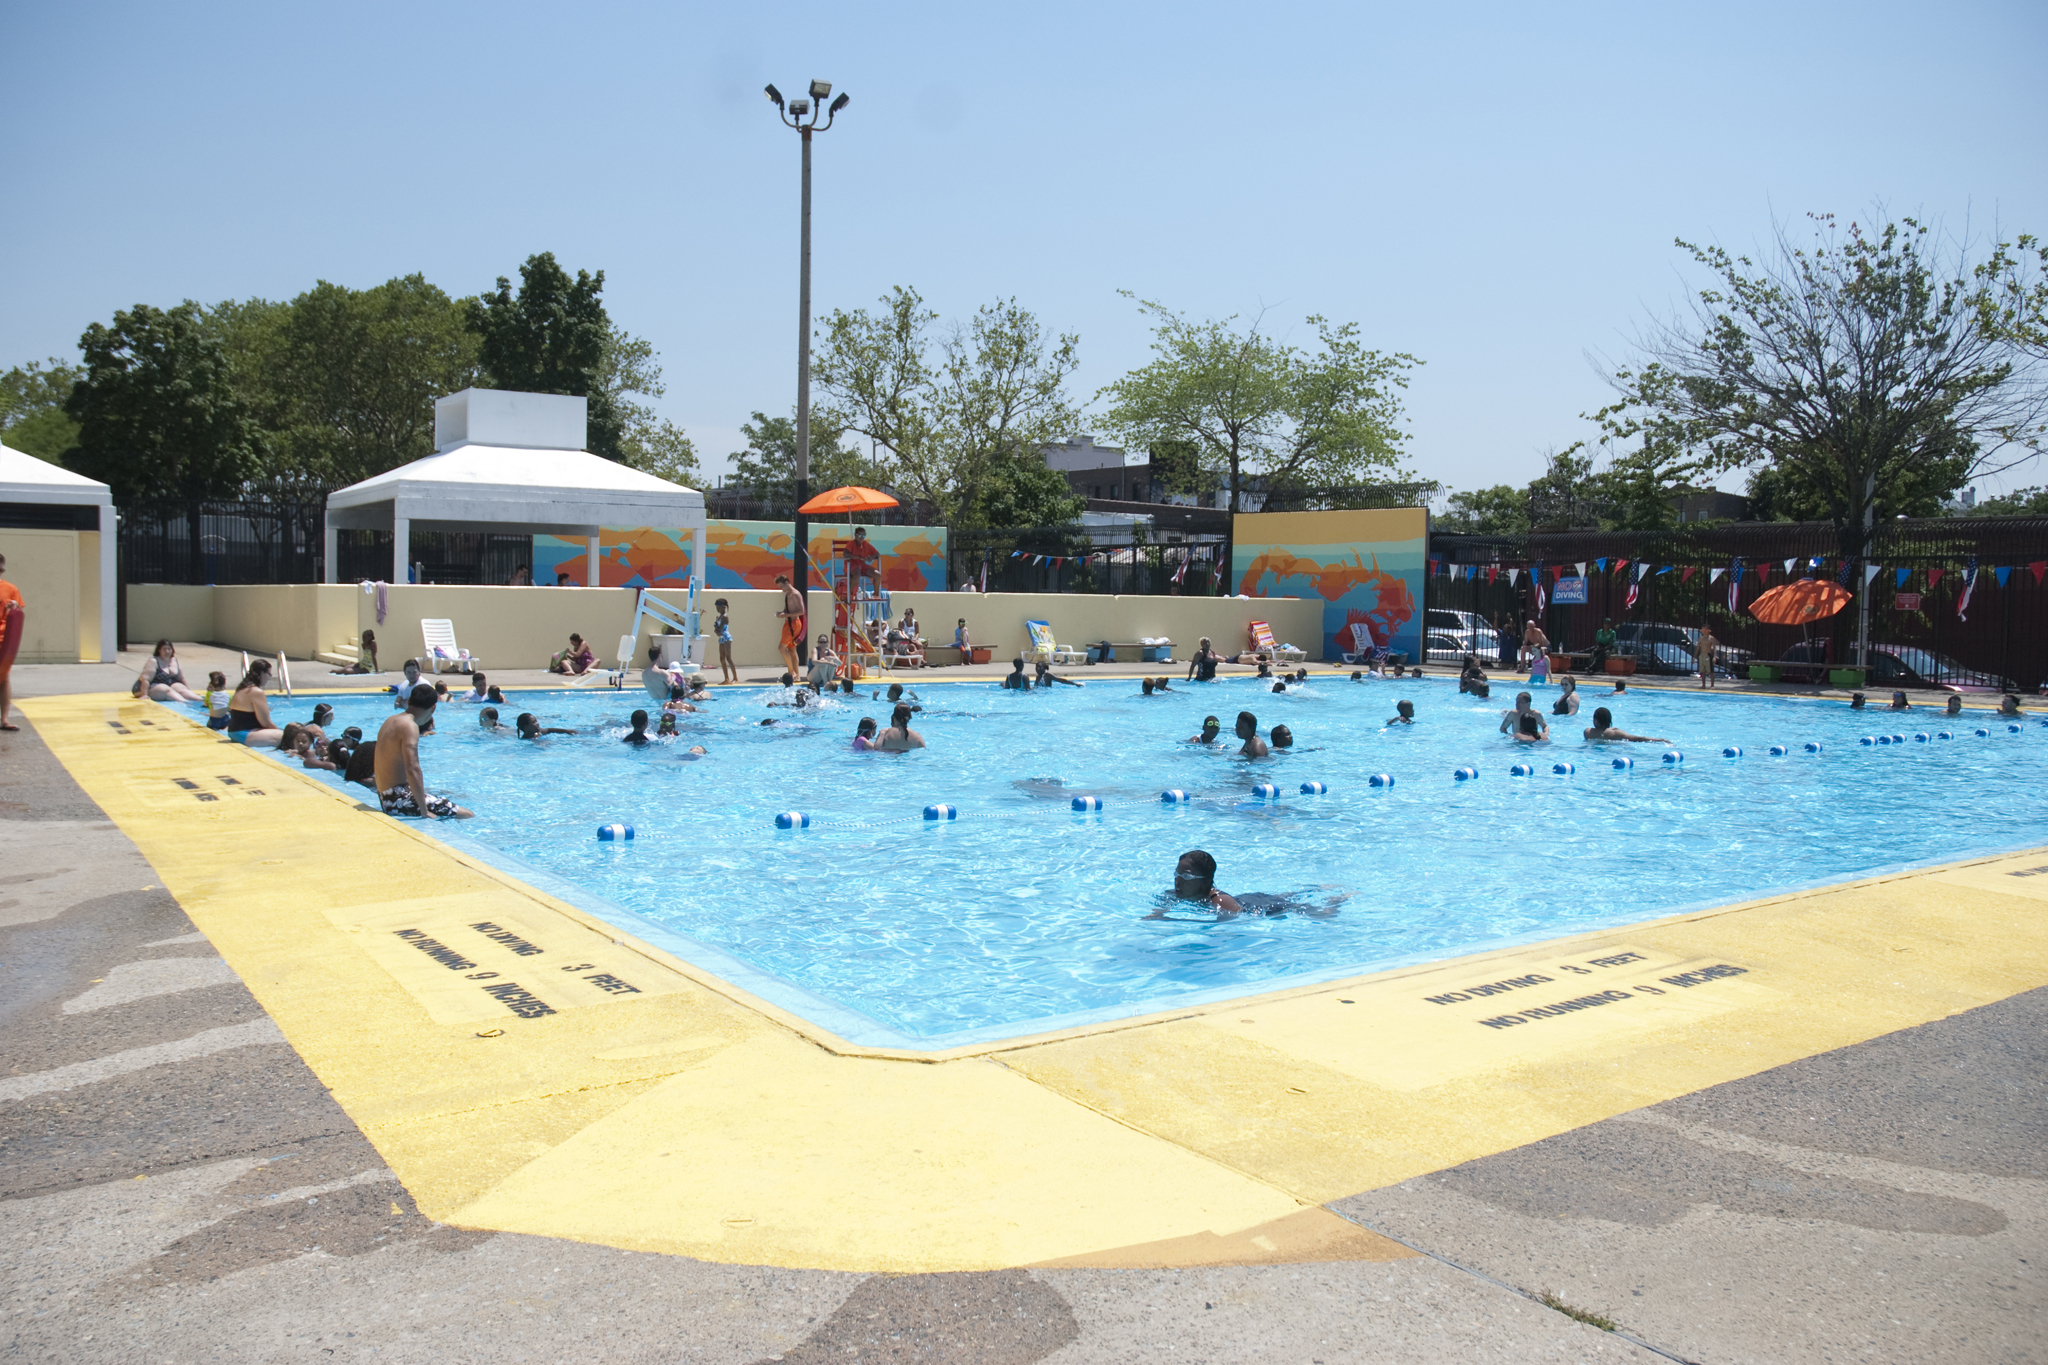 Douglass and DeGraw Pool